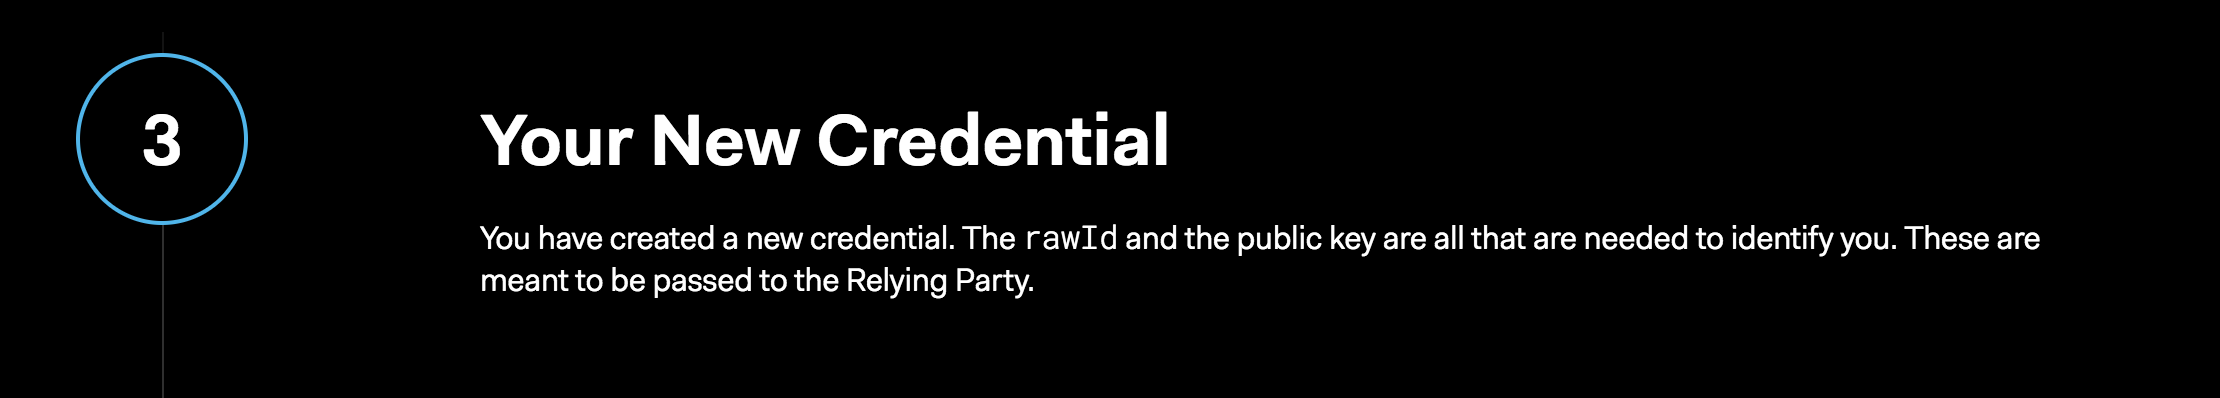 WebAuthn Credentials and Login Demo - Step 3 rawId and public key created on WebAuthn.me